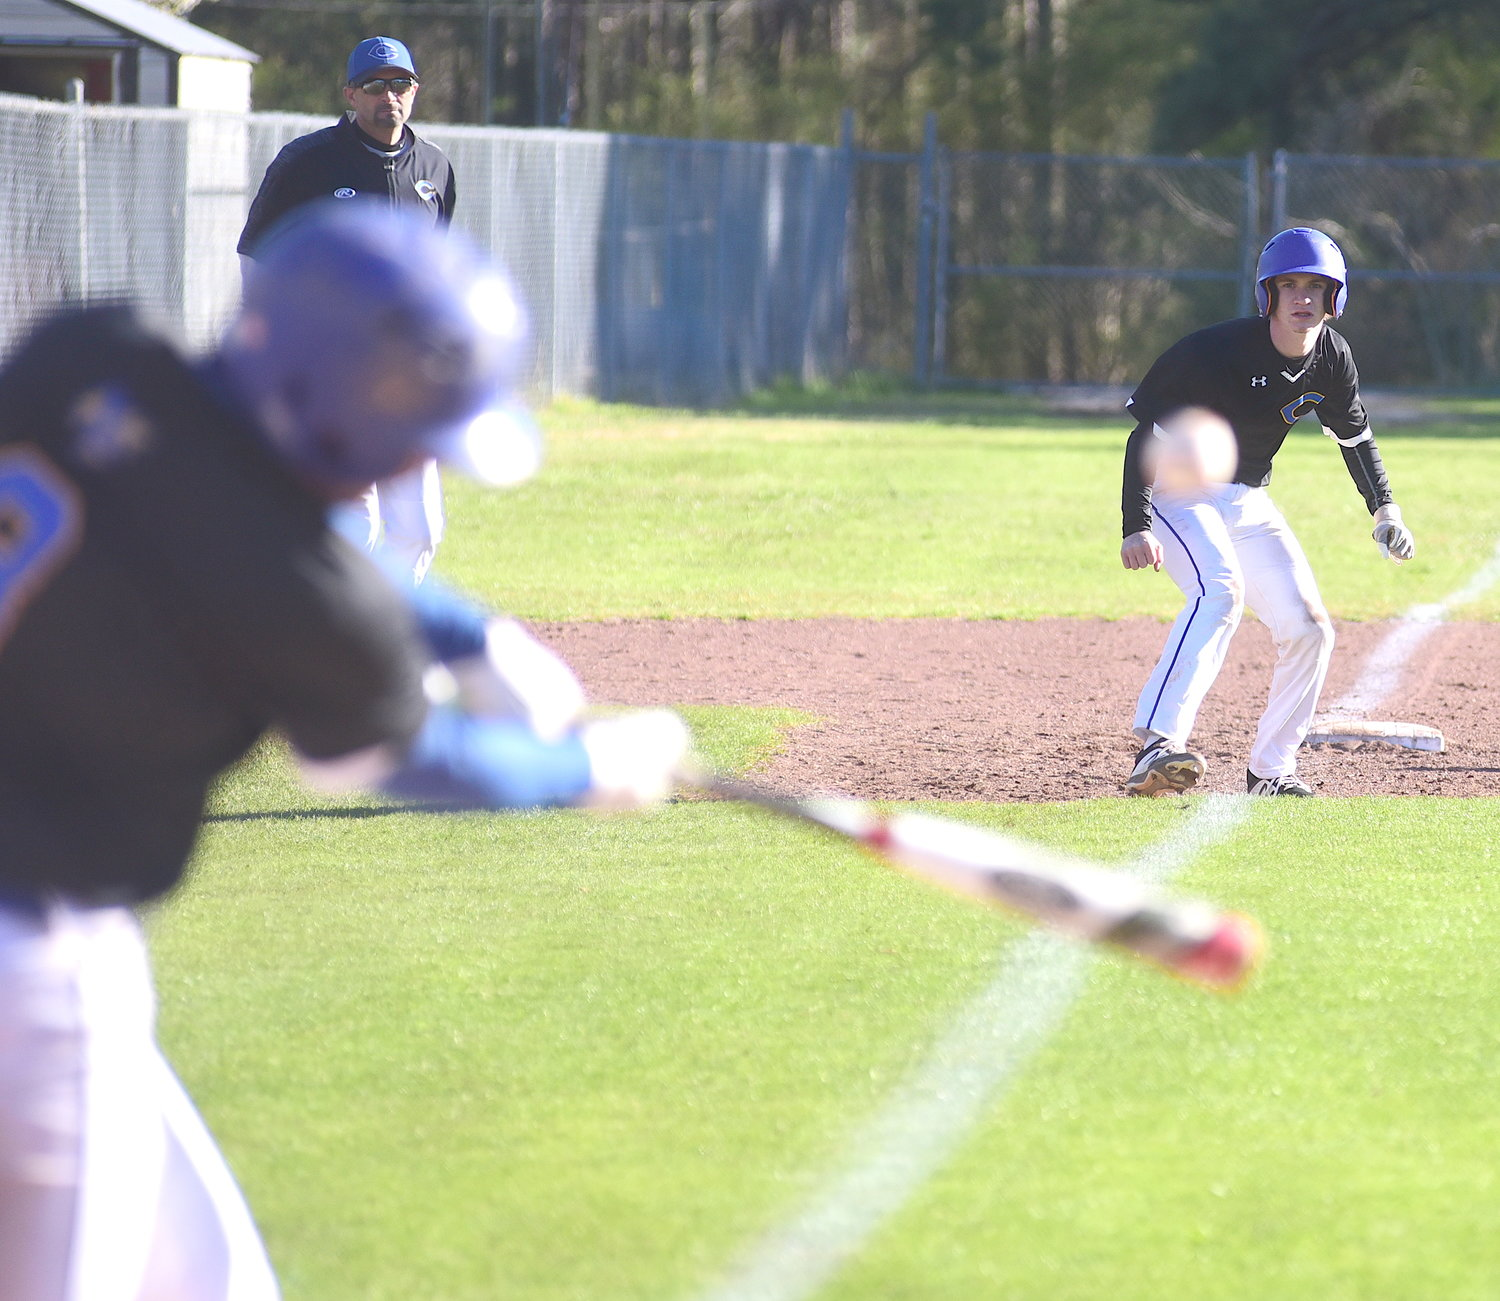 Curry's Luke Tidwell swings as Aaron Oswalt takes a lead off third base during Tuesday's Walker County Tournament game against Carbon Hill. Tidwell doubled on the play, scoring Oswalt. Curry won 3-2.